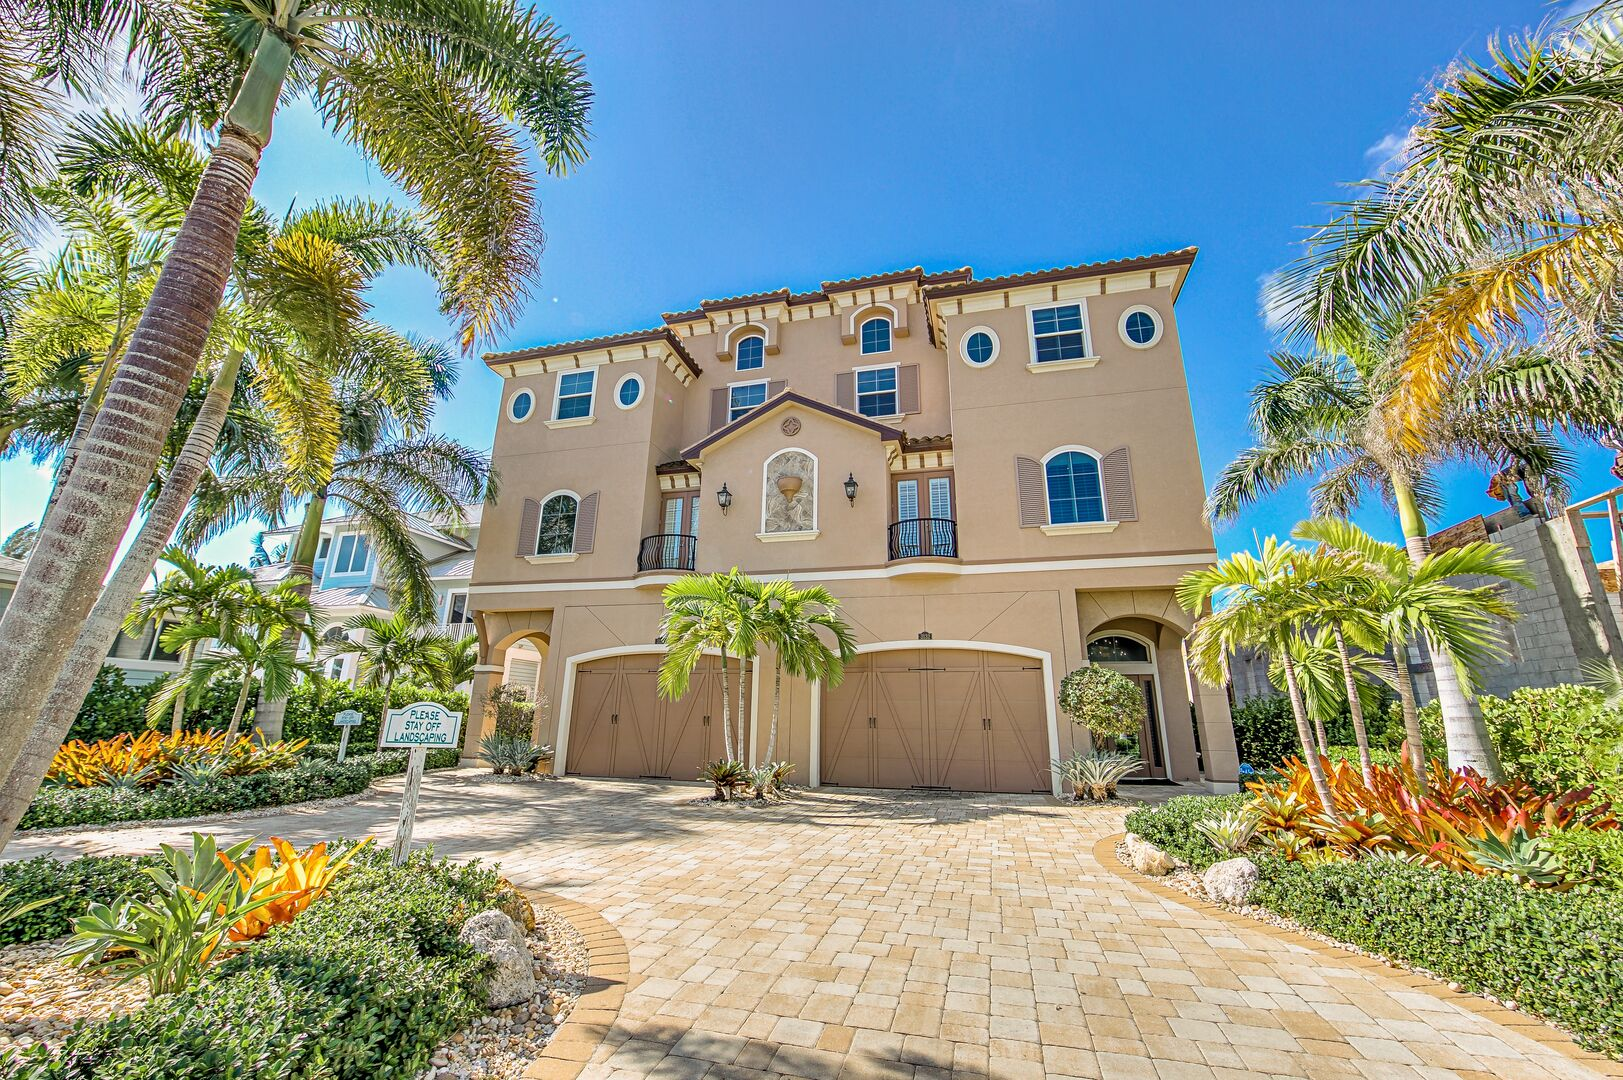 Front Picture of Our Vacation Home in Fort Myers.